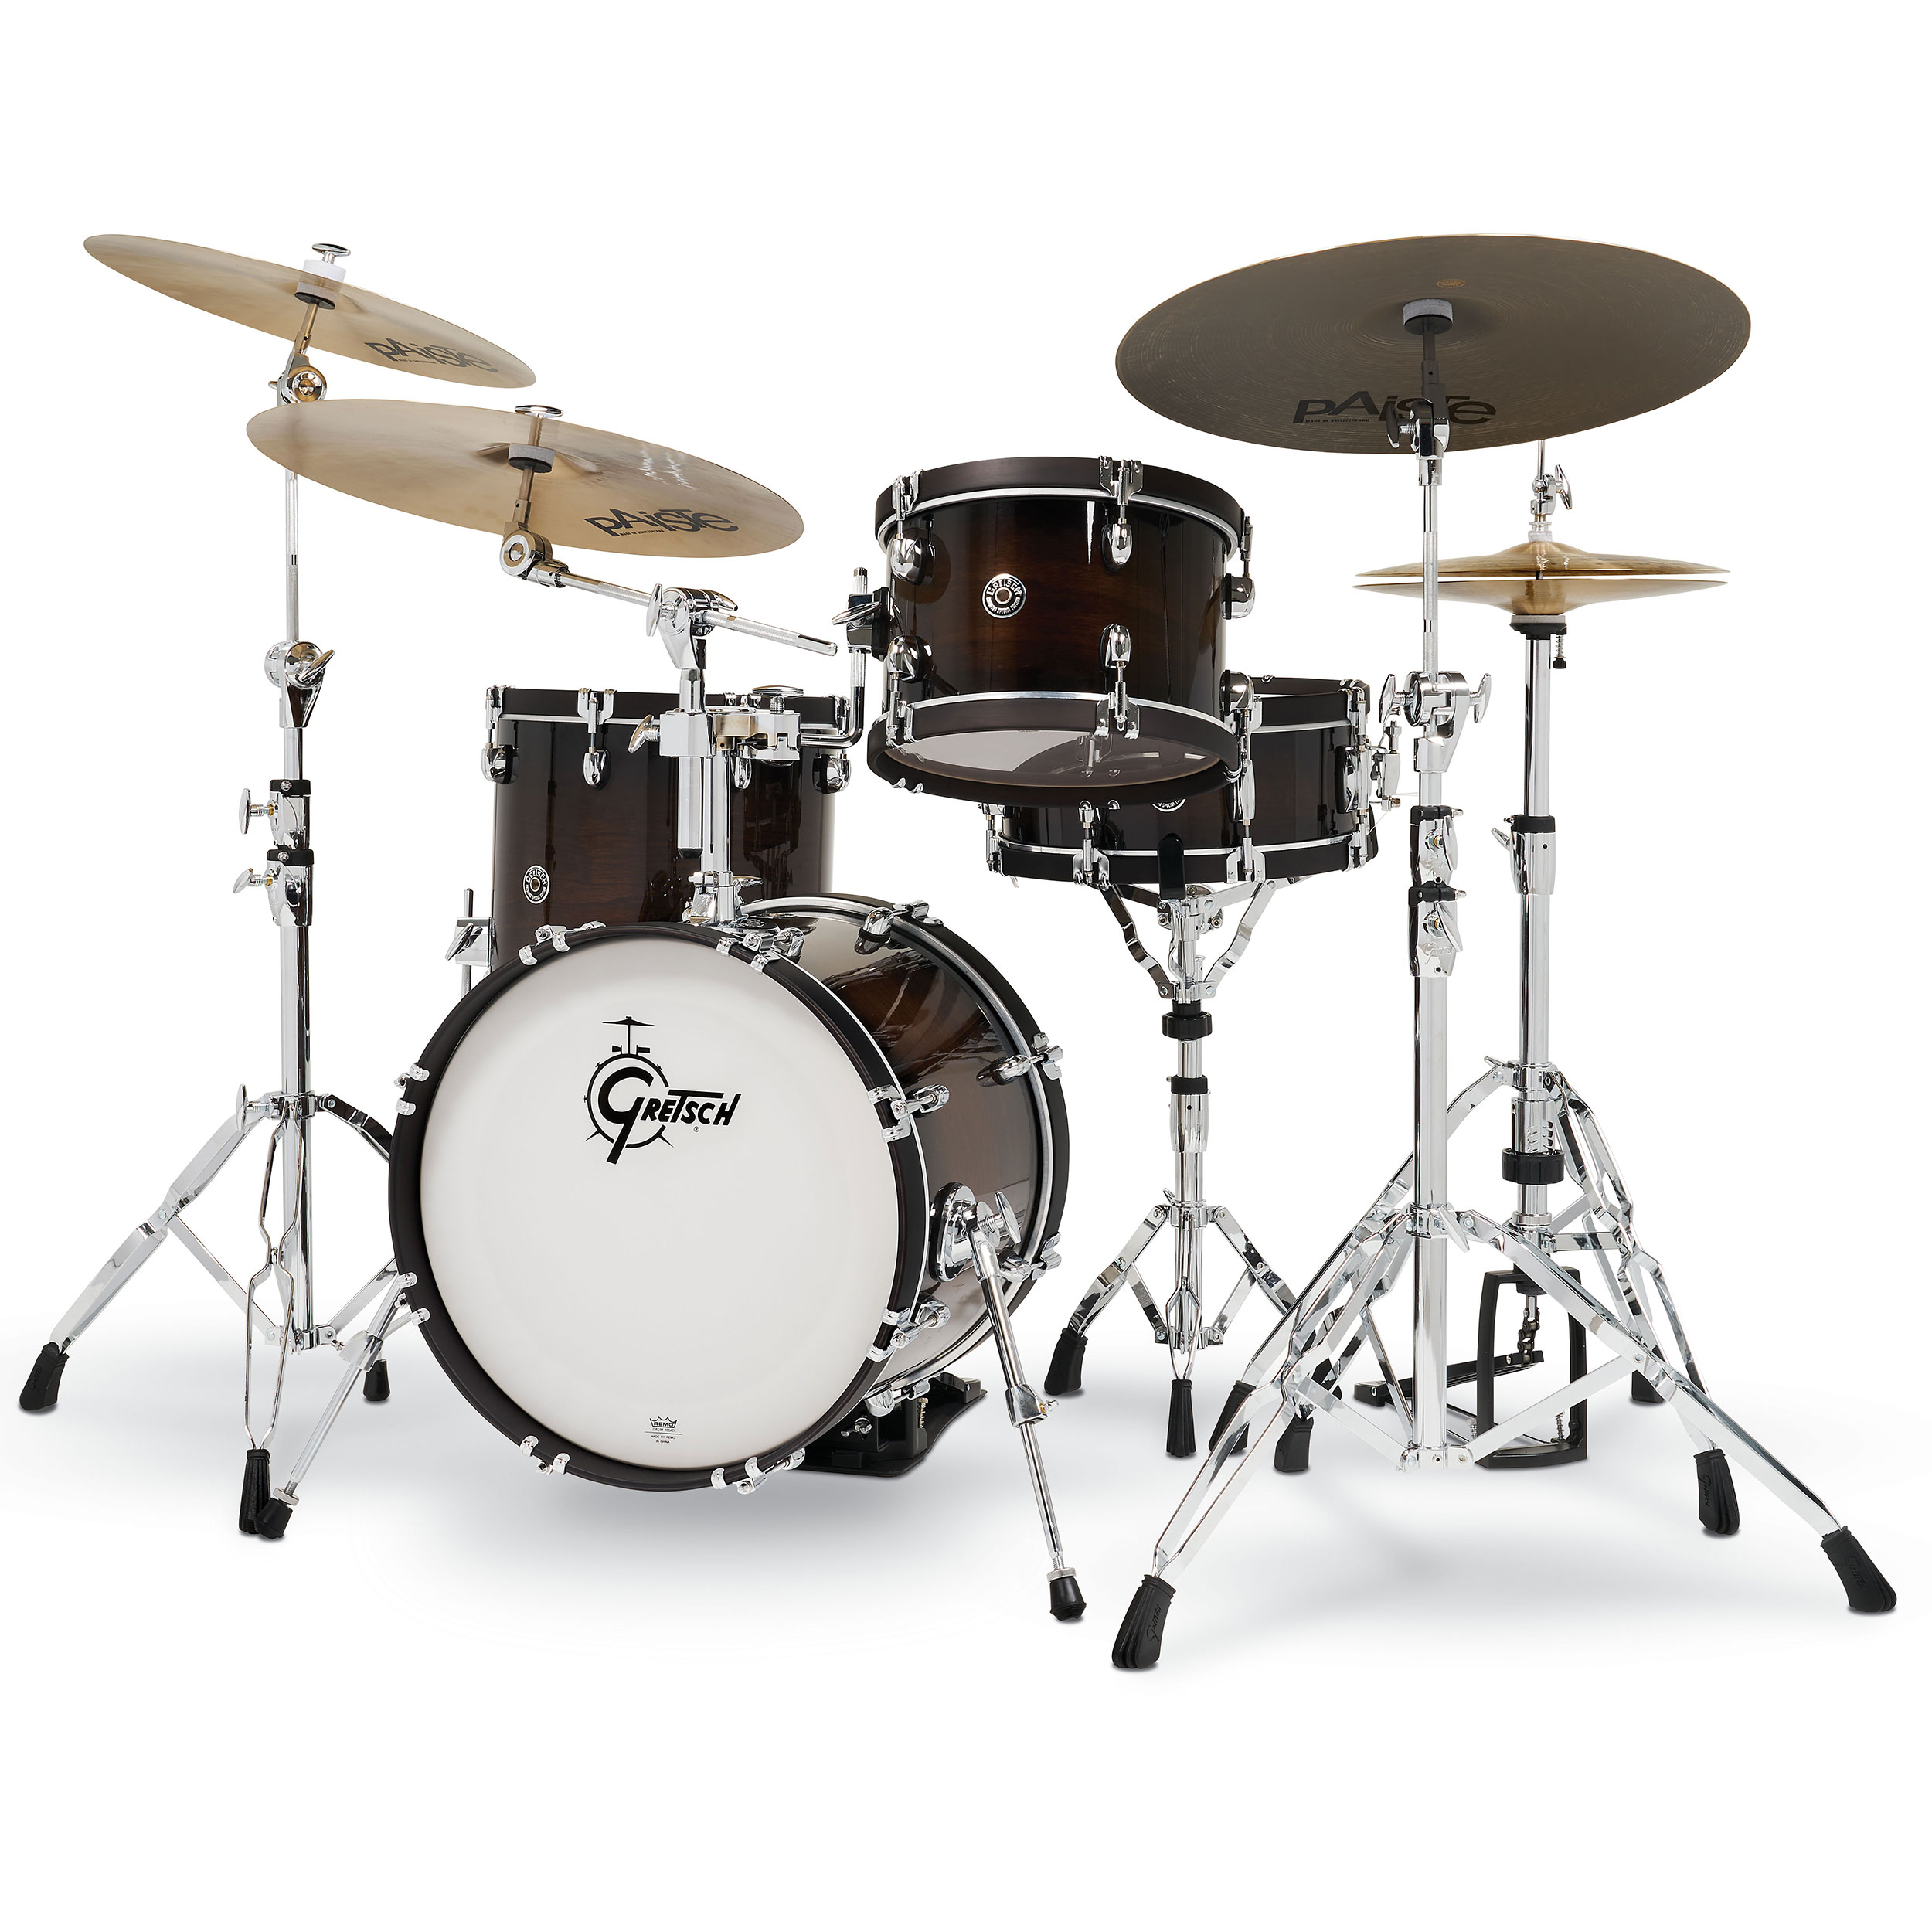 "Gretsch Catalina Special Edition 4-Piece Drum Set Shell Pack (18"" Bass, 12/14"" Toms, 14"" Snare) in Walnut Burst"